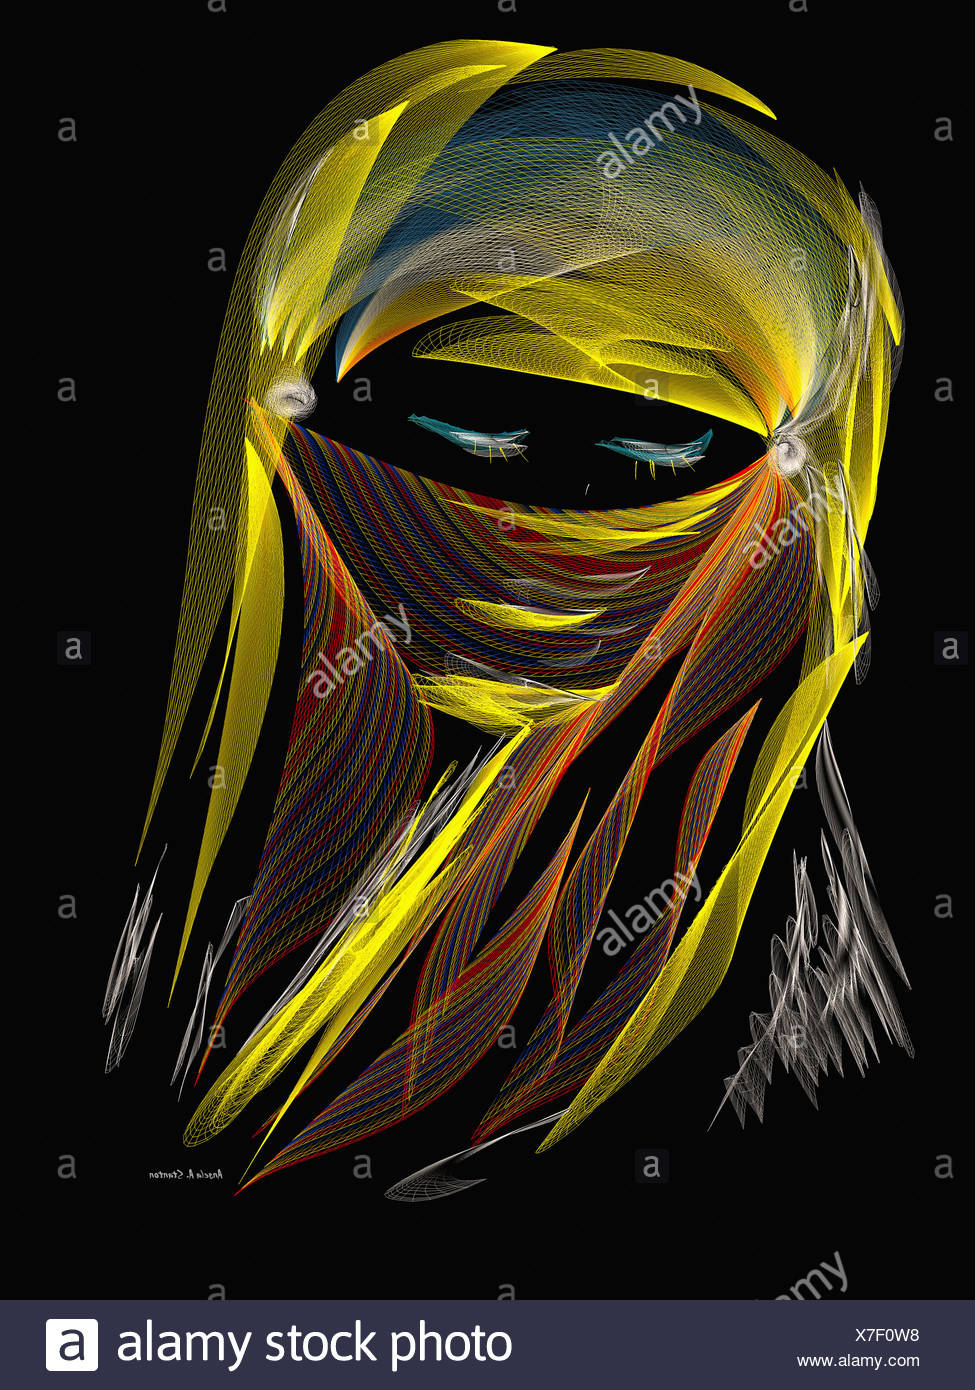 Computer Generated Image Of A Woman's Eyes Peering From A Headscarf - Stock Image